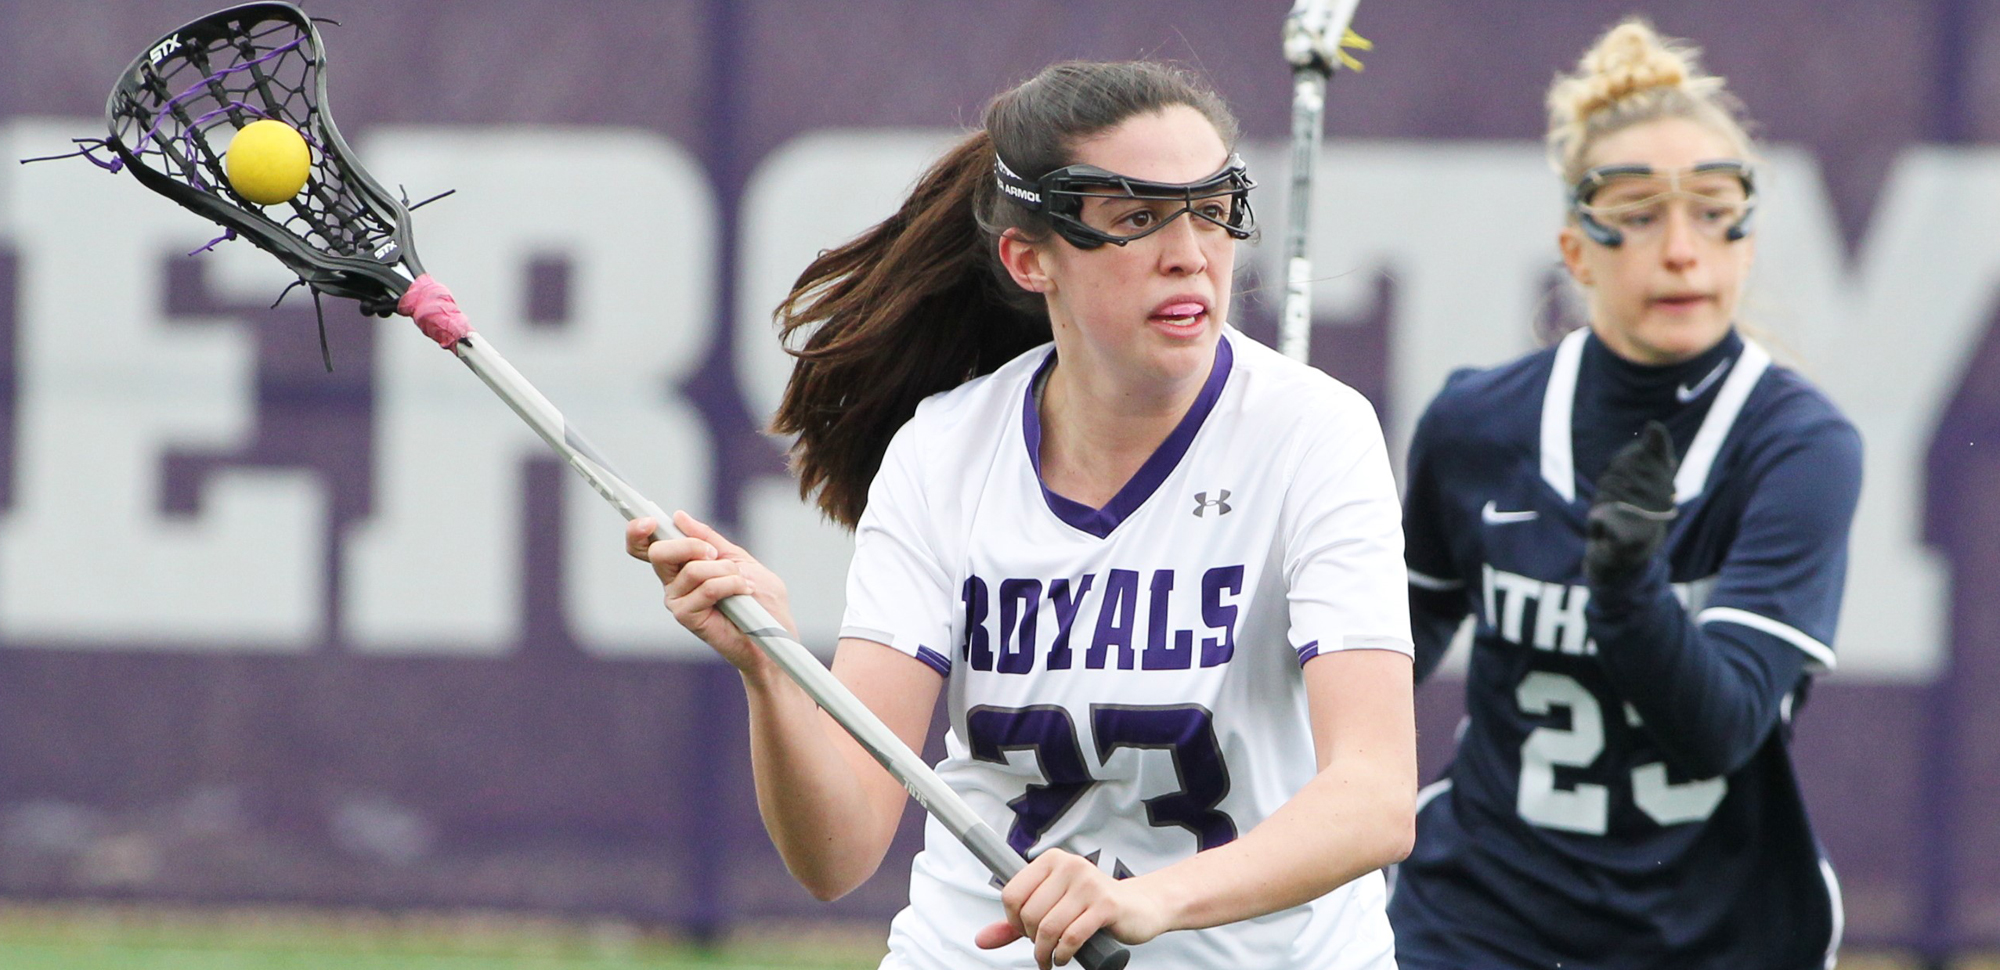 Junior Kate Calabro had nine draw controls to keep Scranton in it all day, but visiting Ithaca pulled out a 12-10 win over the Royals on Sunday at Weiss Field.